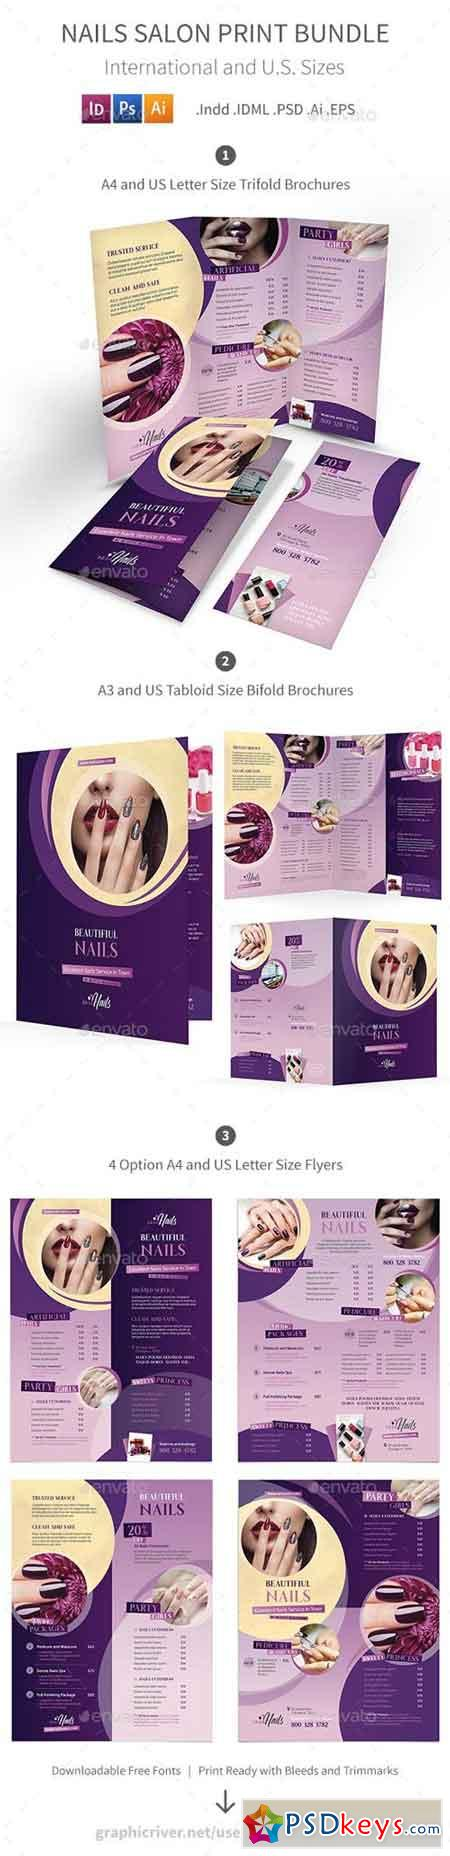 Nails Salon Print Bundle   Brochures    Nail